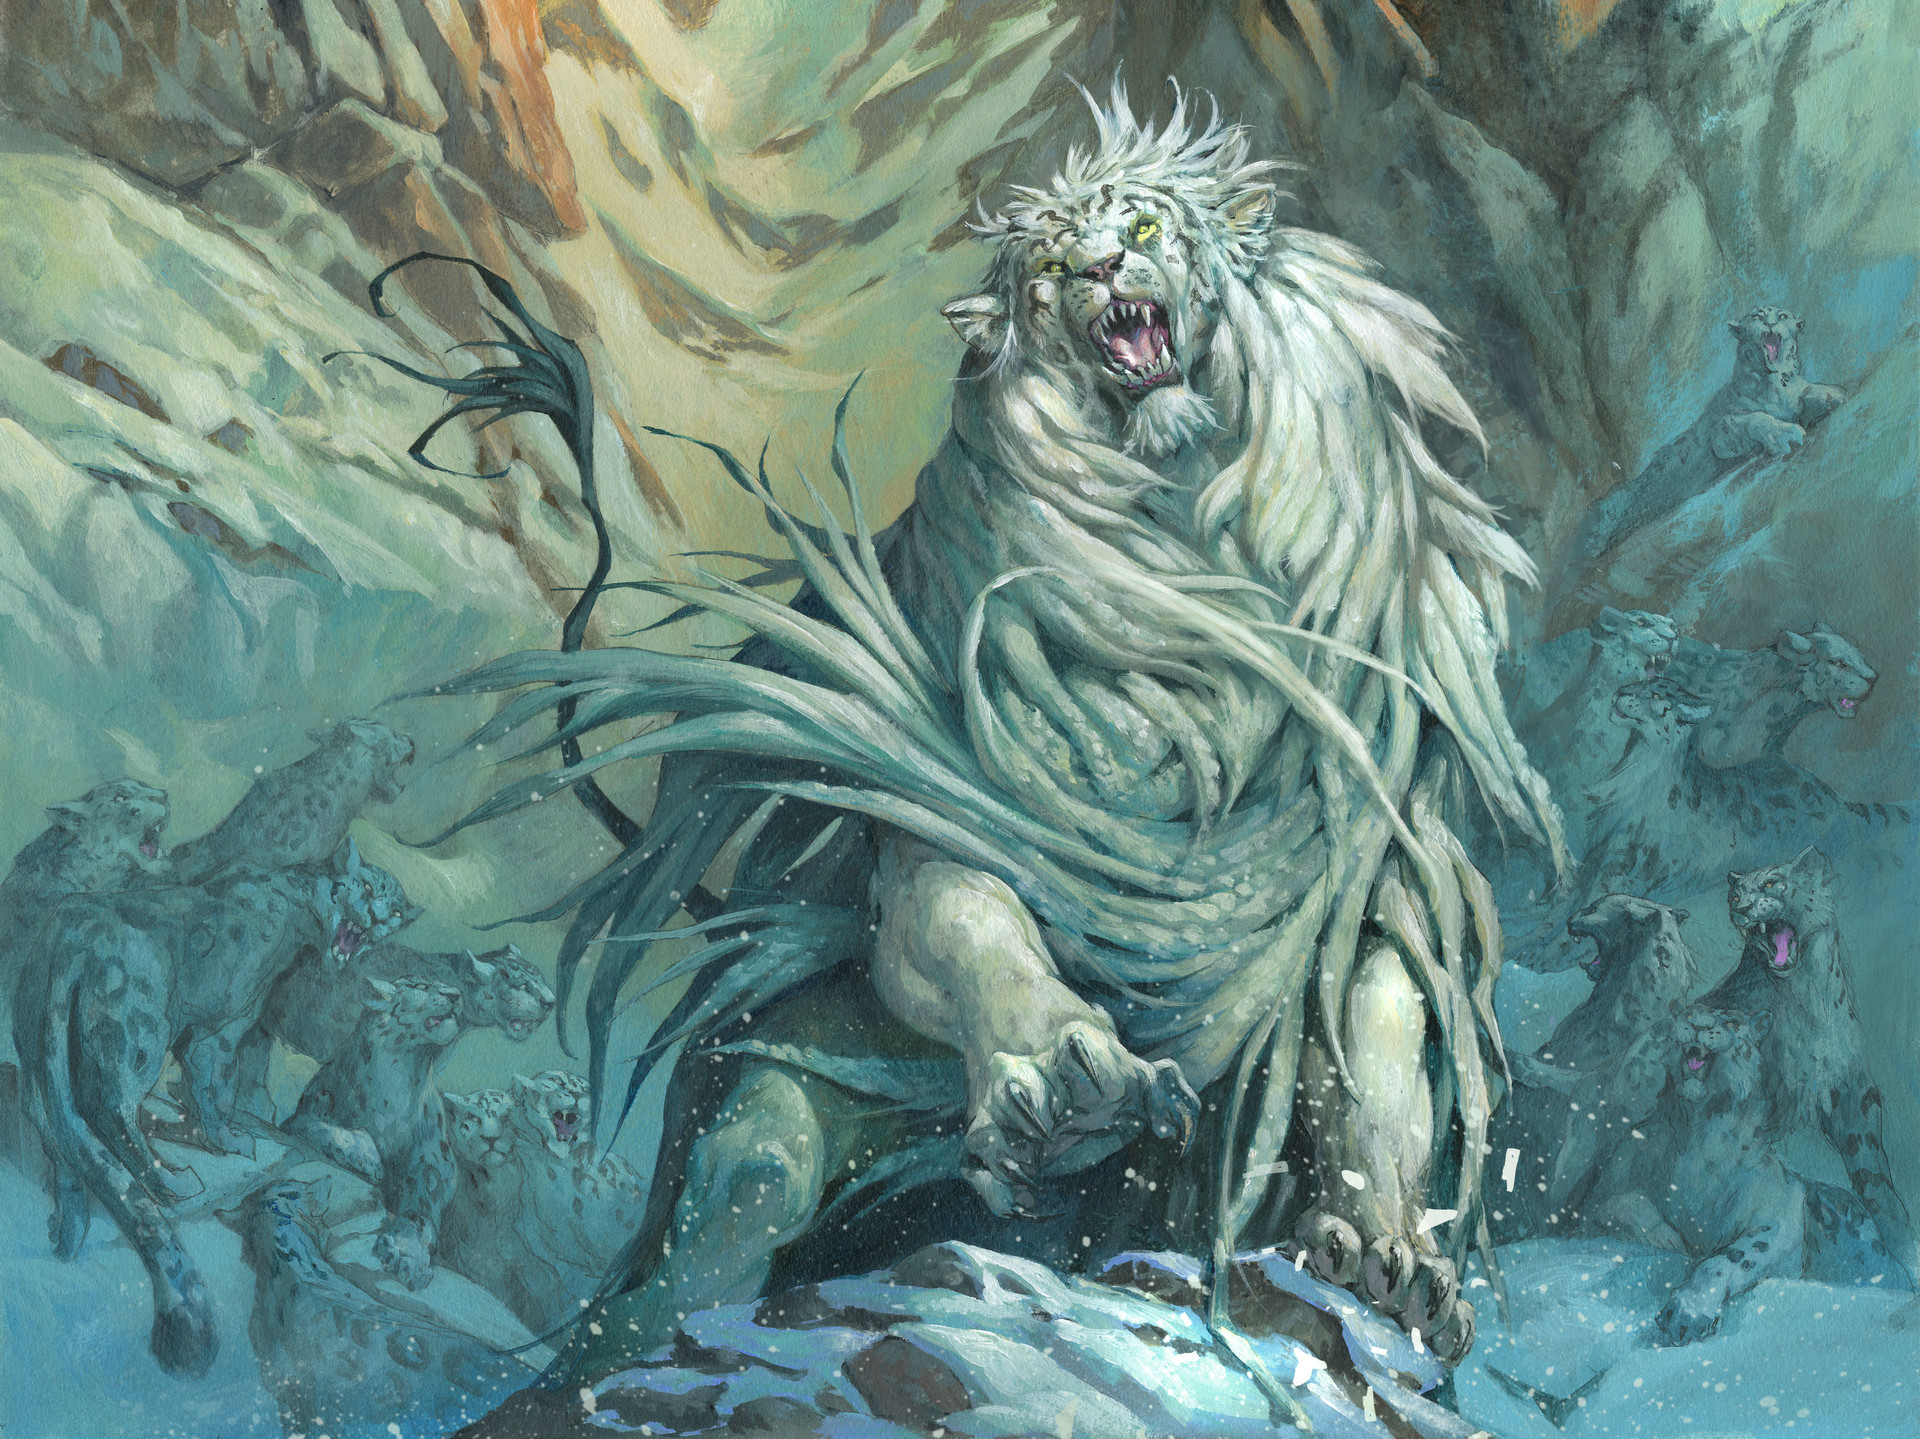 Jesper Ejsing Acrylic Painting Arahbo, Roar of the World Magic the Gathering commander card art